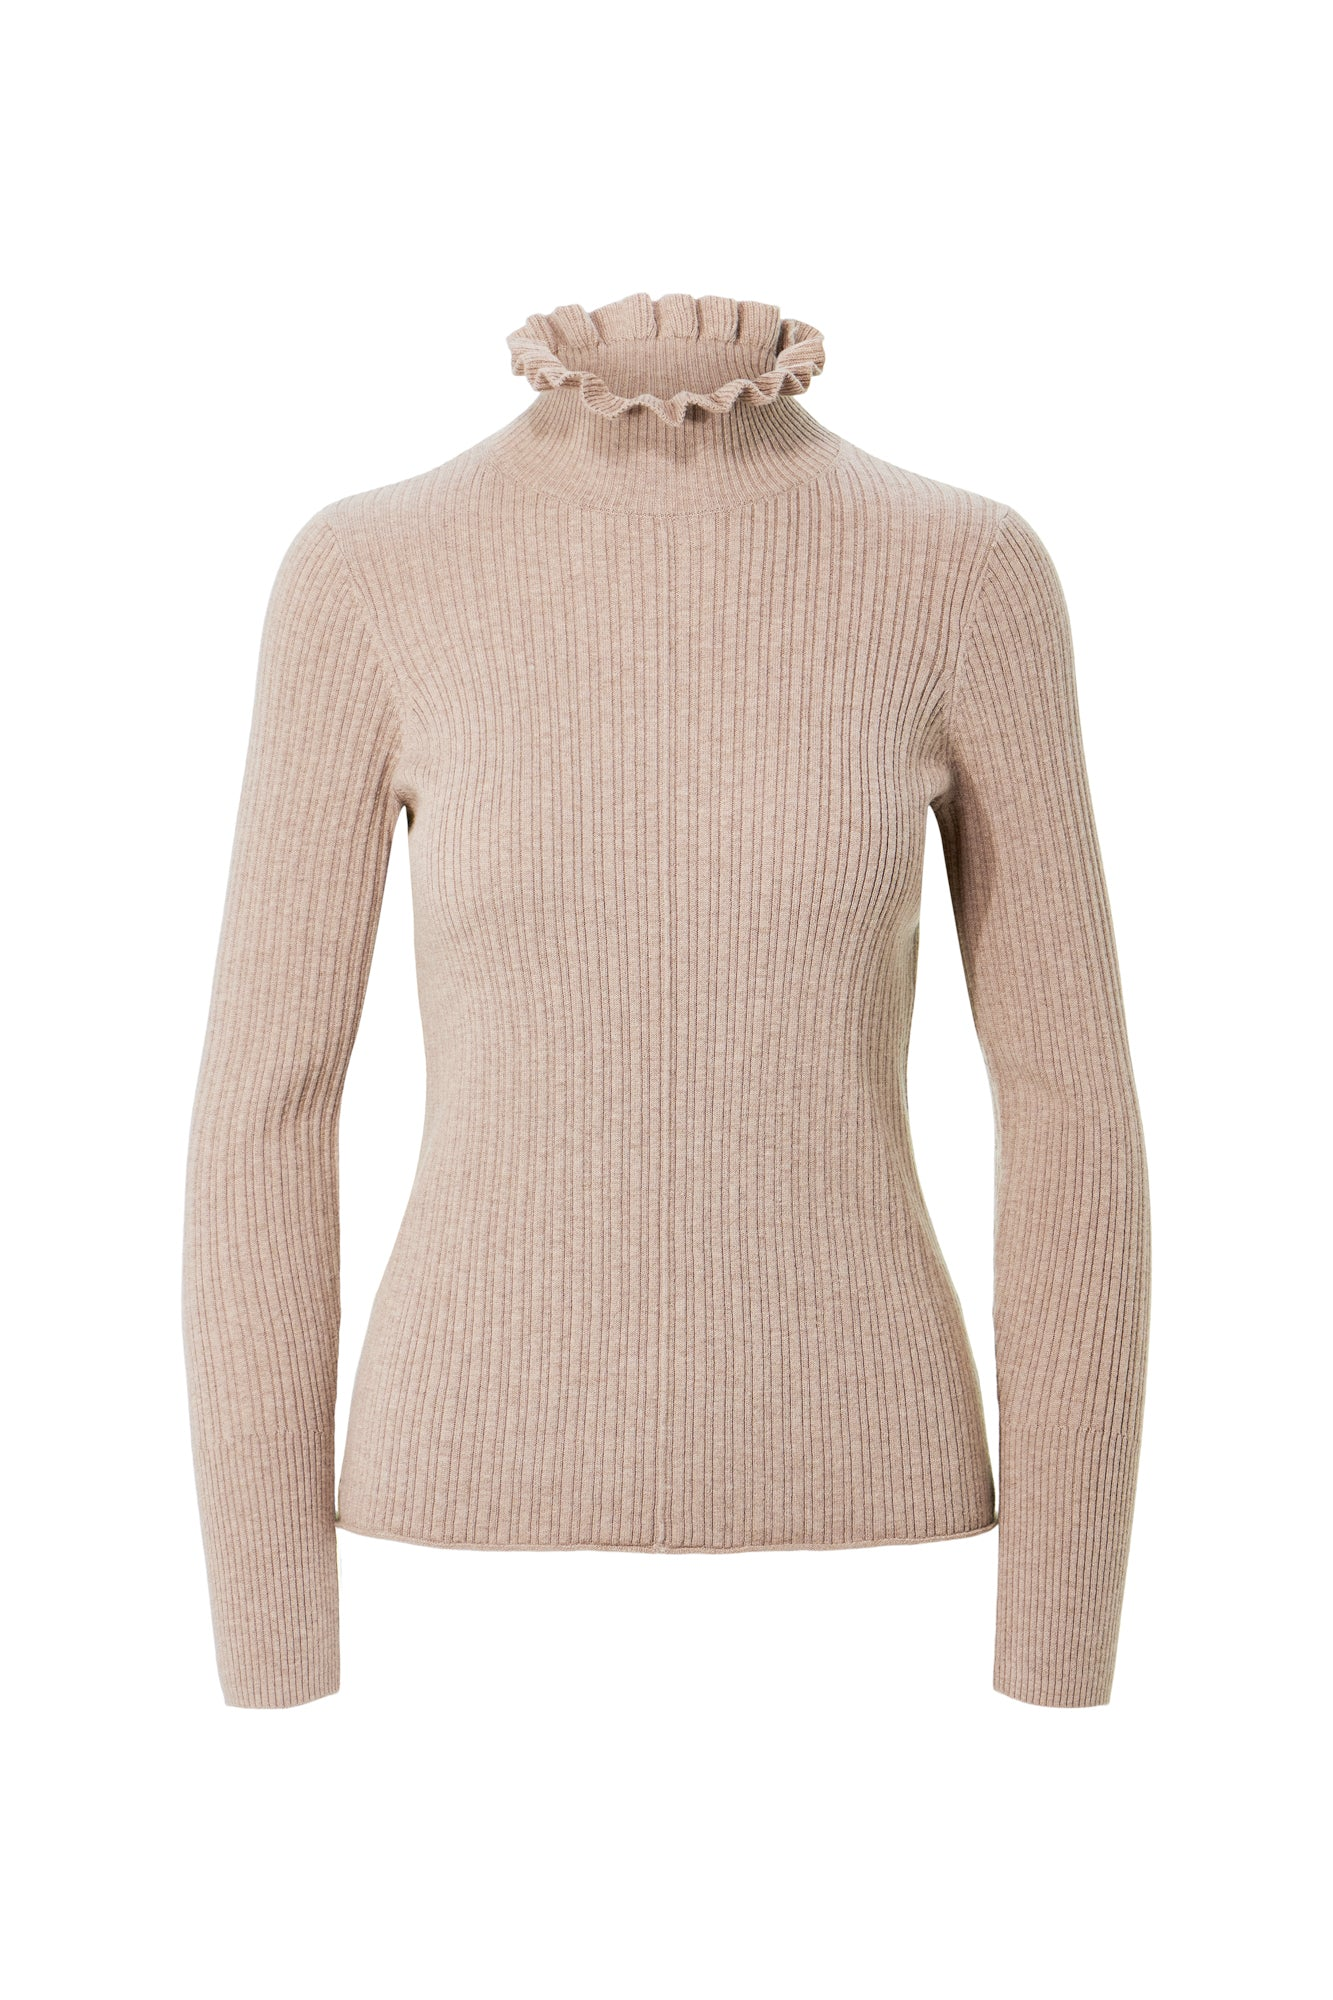 Zenya Top - Oatmeal